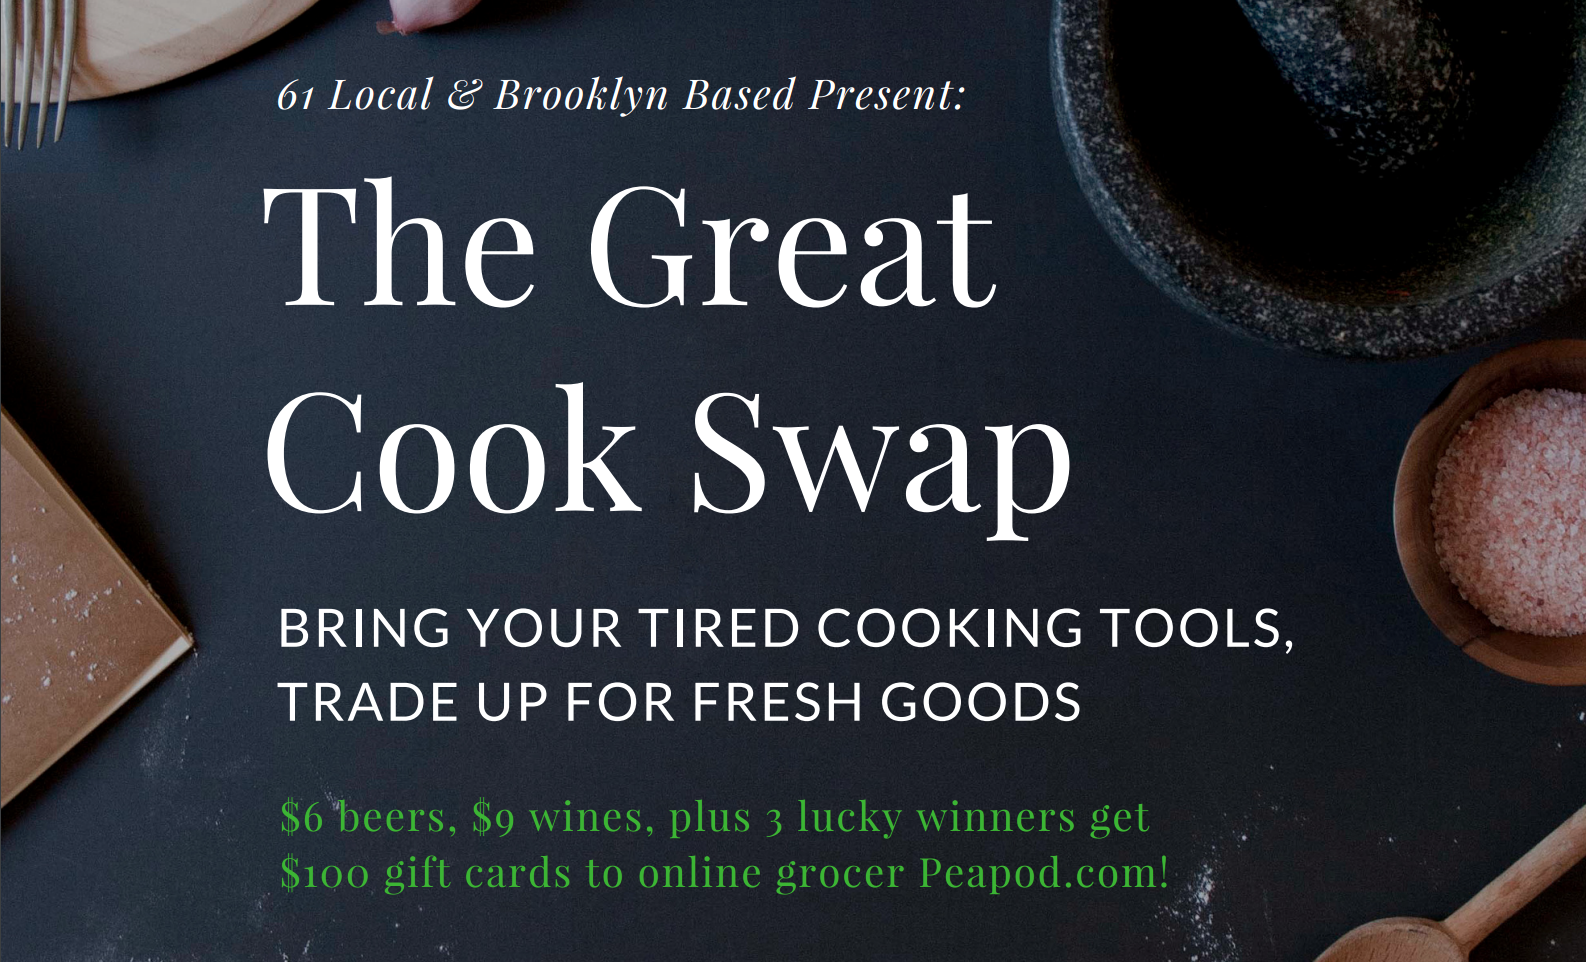 the great cook swap refresh your kitchen collection on dec 13 the great cook swap refresh your kitchen collection on dec 13 brooklyn based